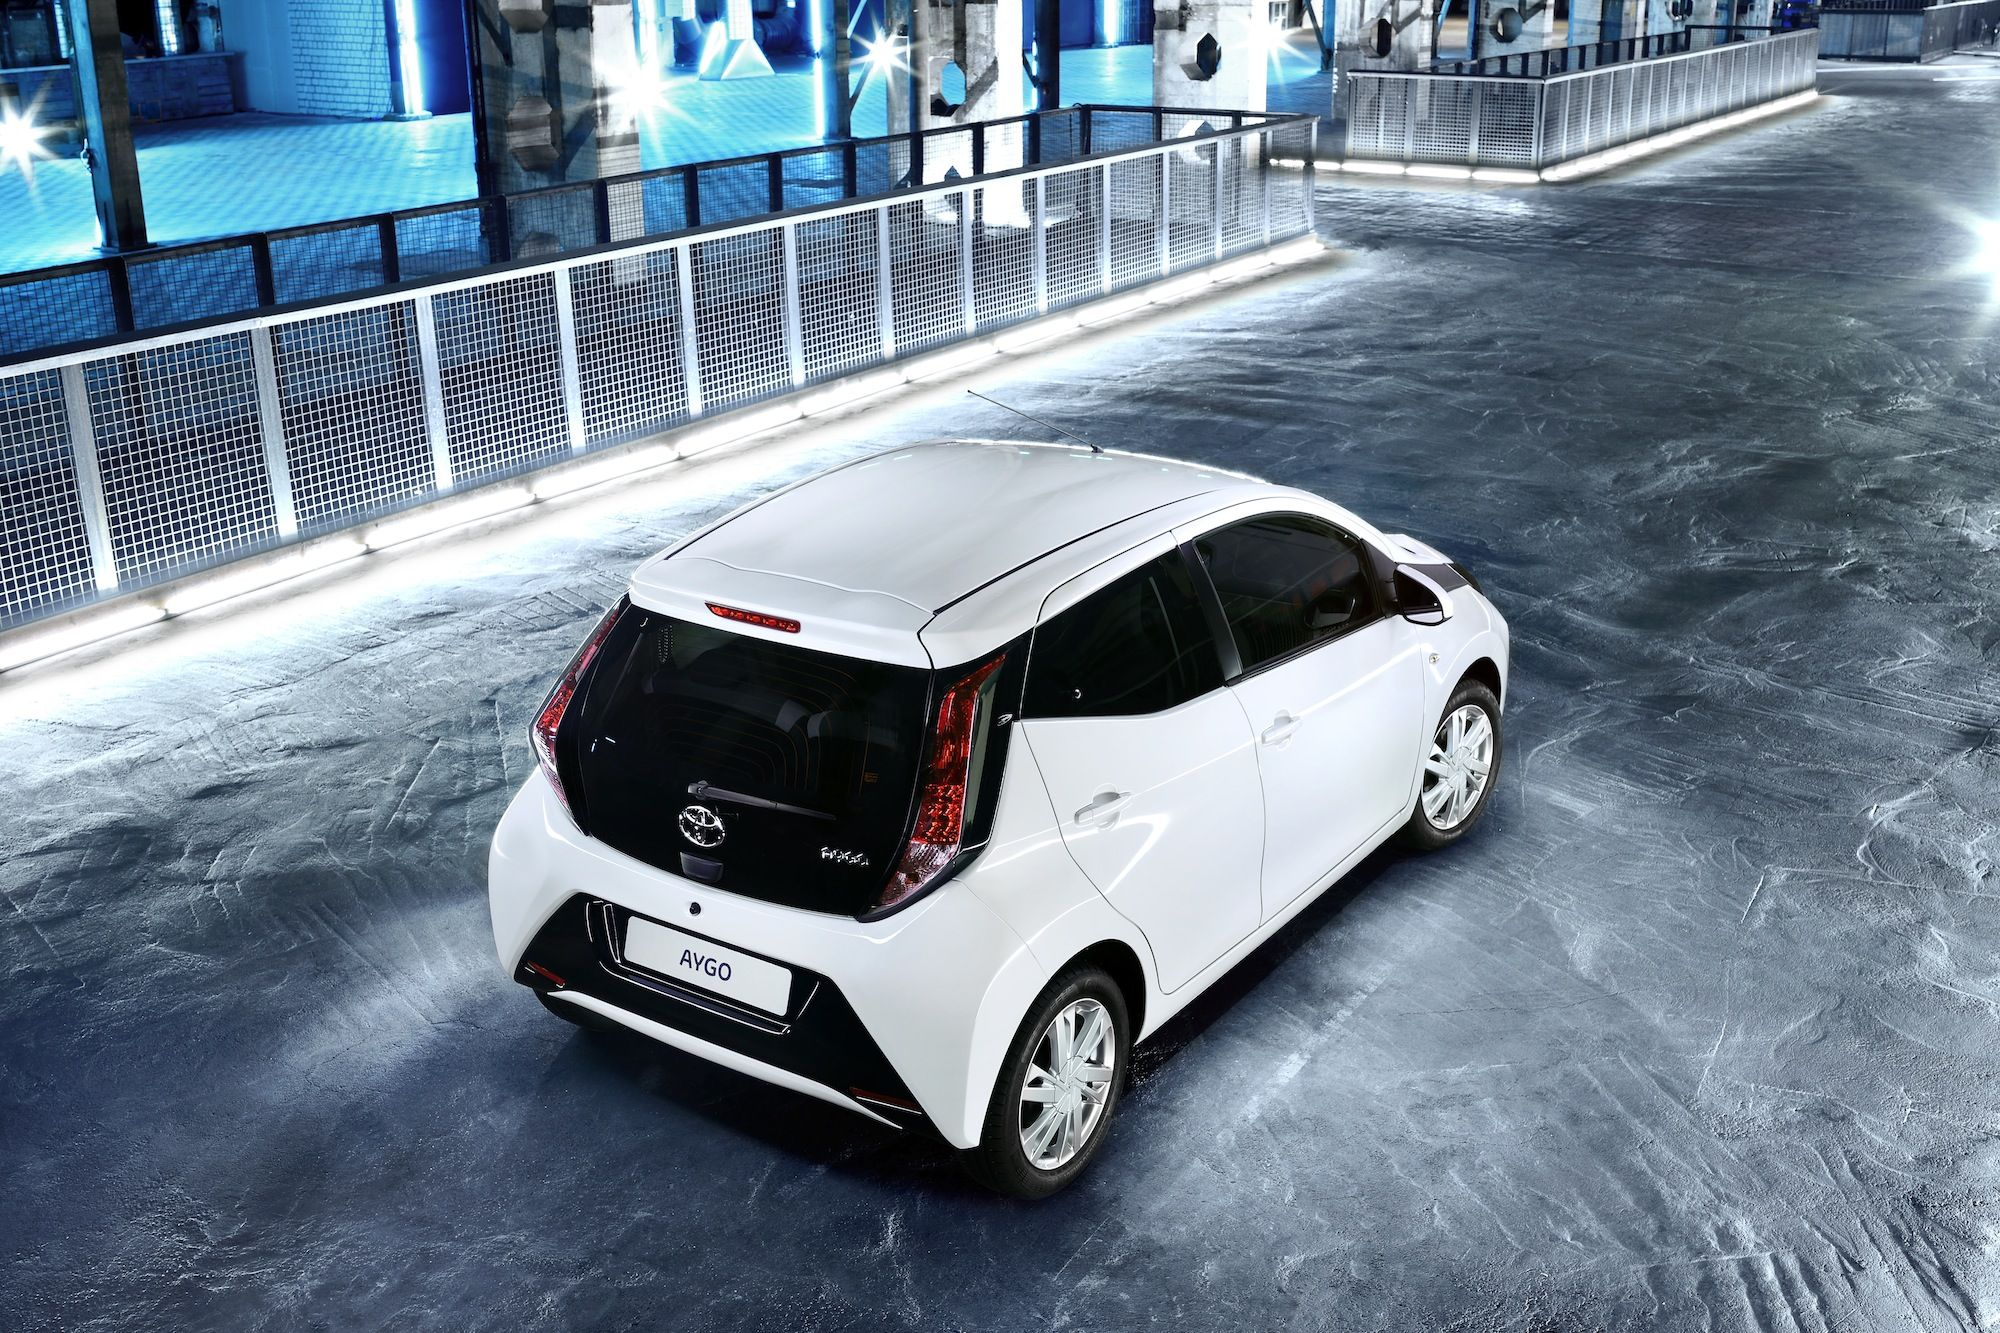 All new toyota aygo is unveiled at 2014 geneva motor show and aims to set new standards in customisation